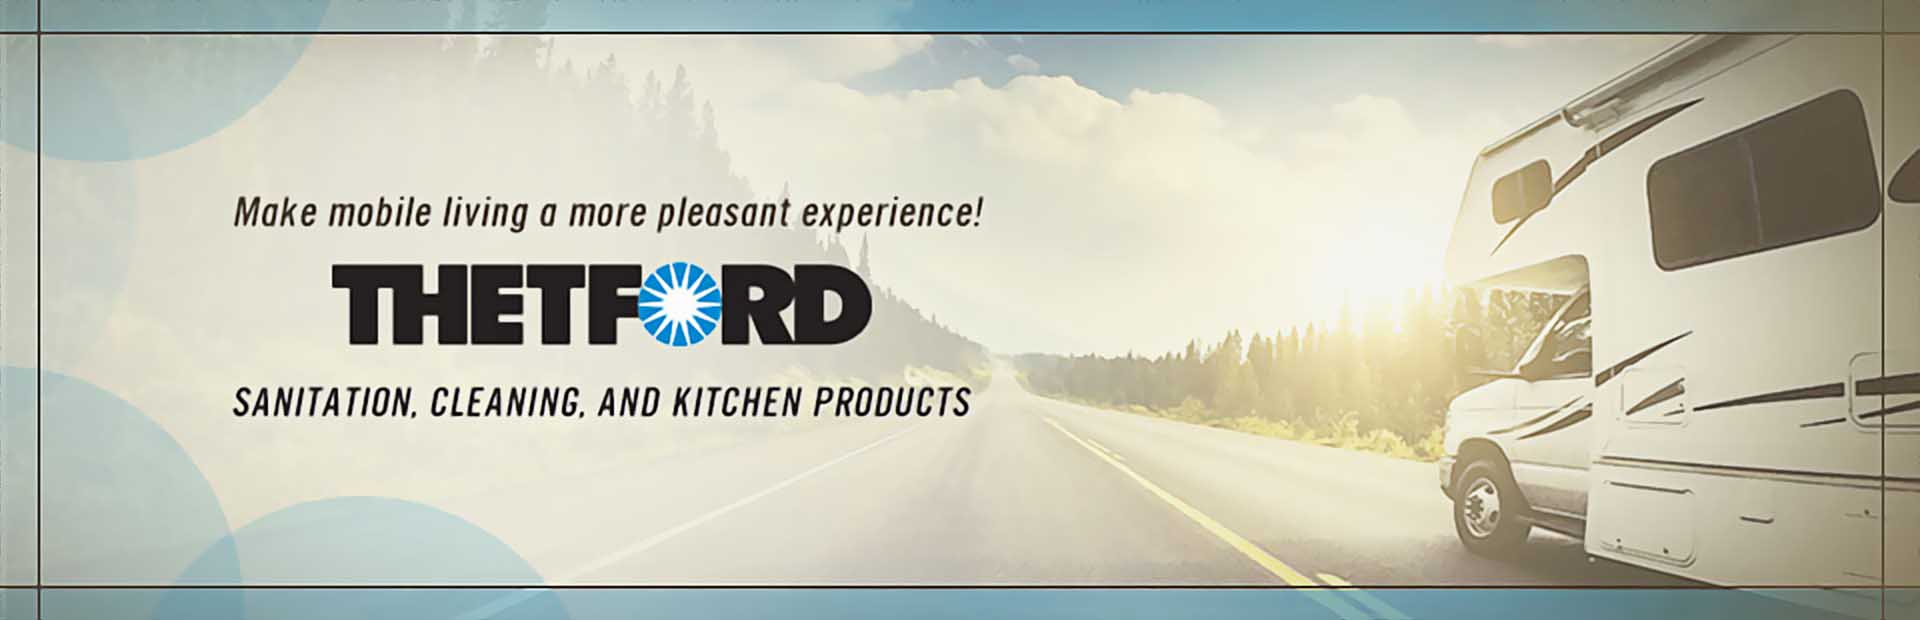 Make mobile living a more pleasant experience with Thetford sanitation, cleaning, and kitchen produc